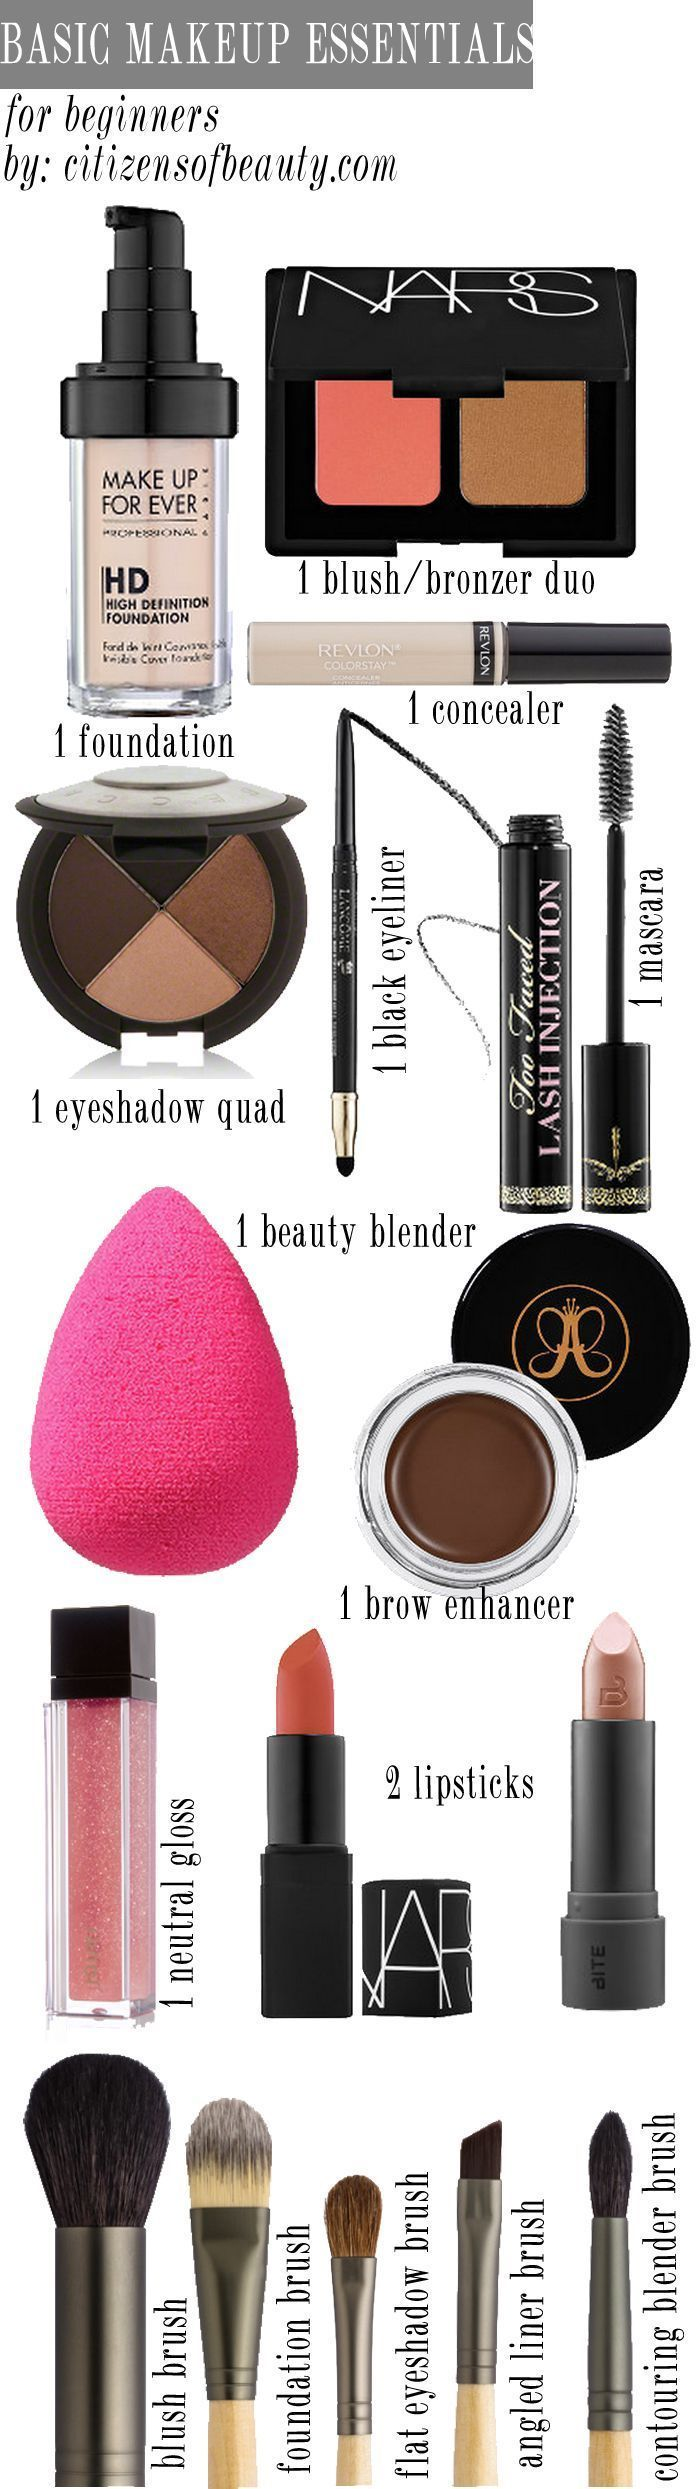 Basic Makeup Essentials for Beginners - Citizens of Beauty.  Discover more by go...